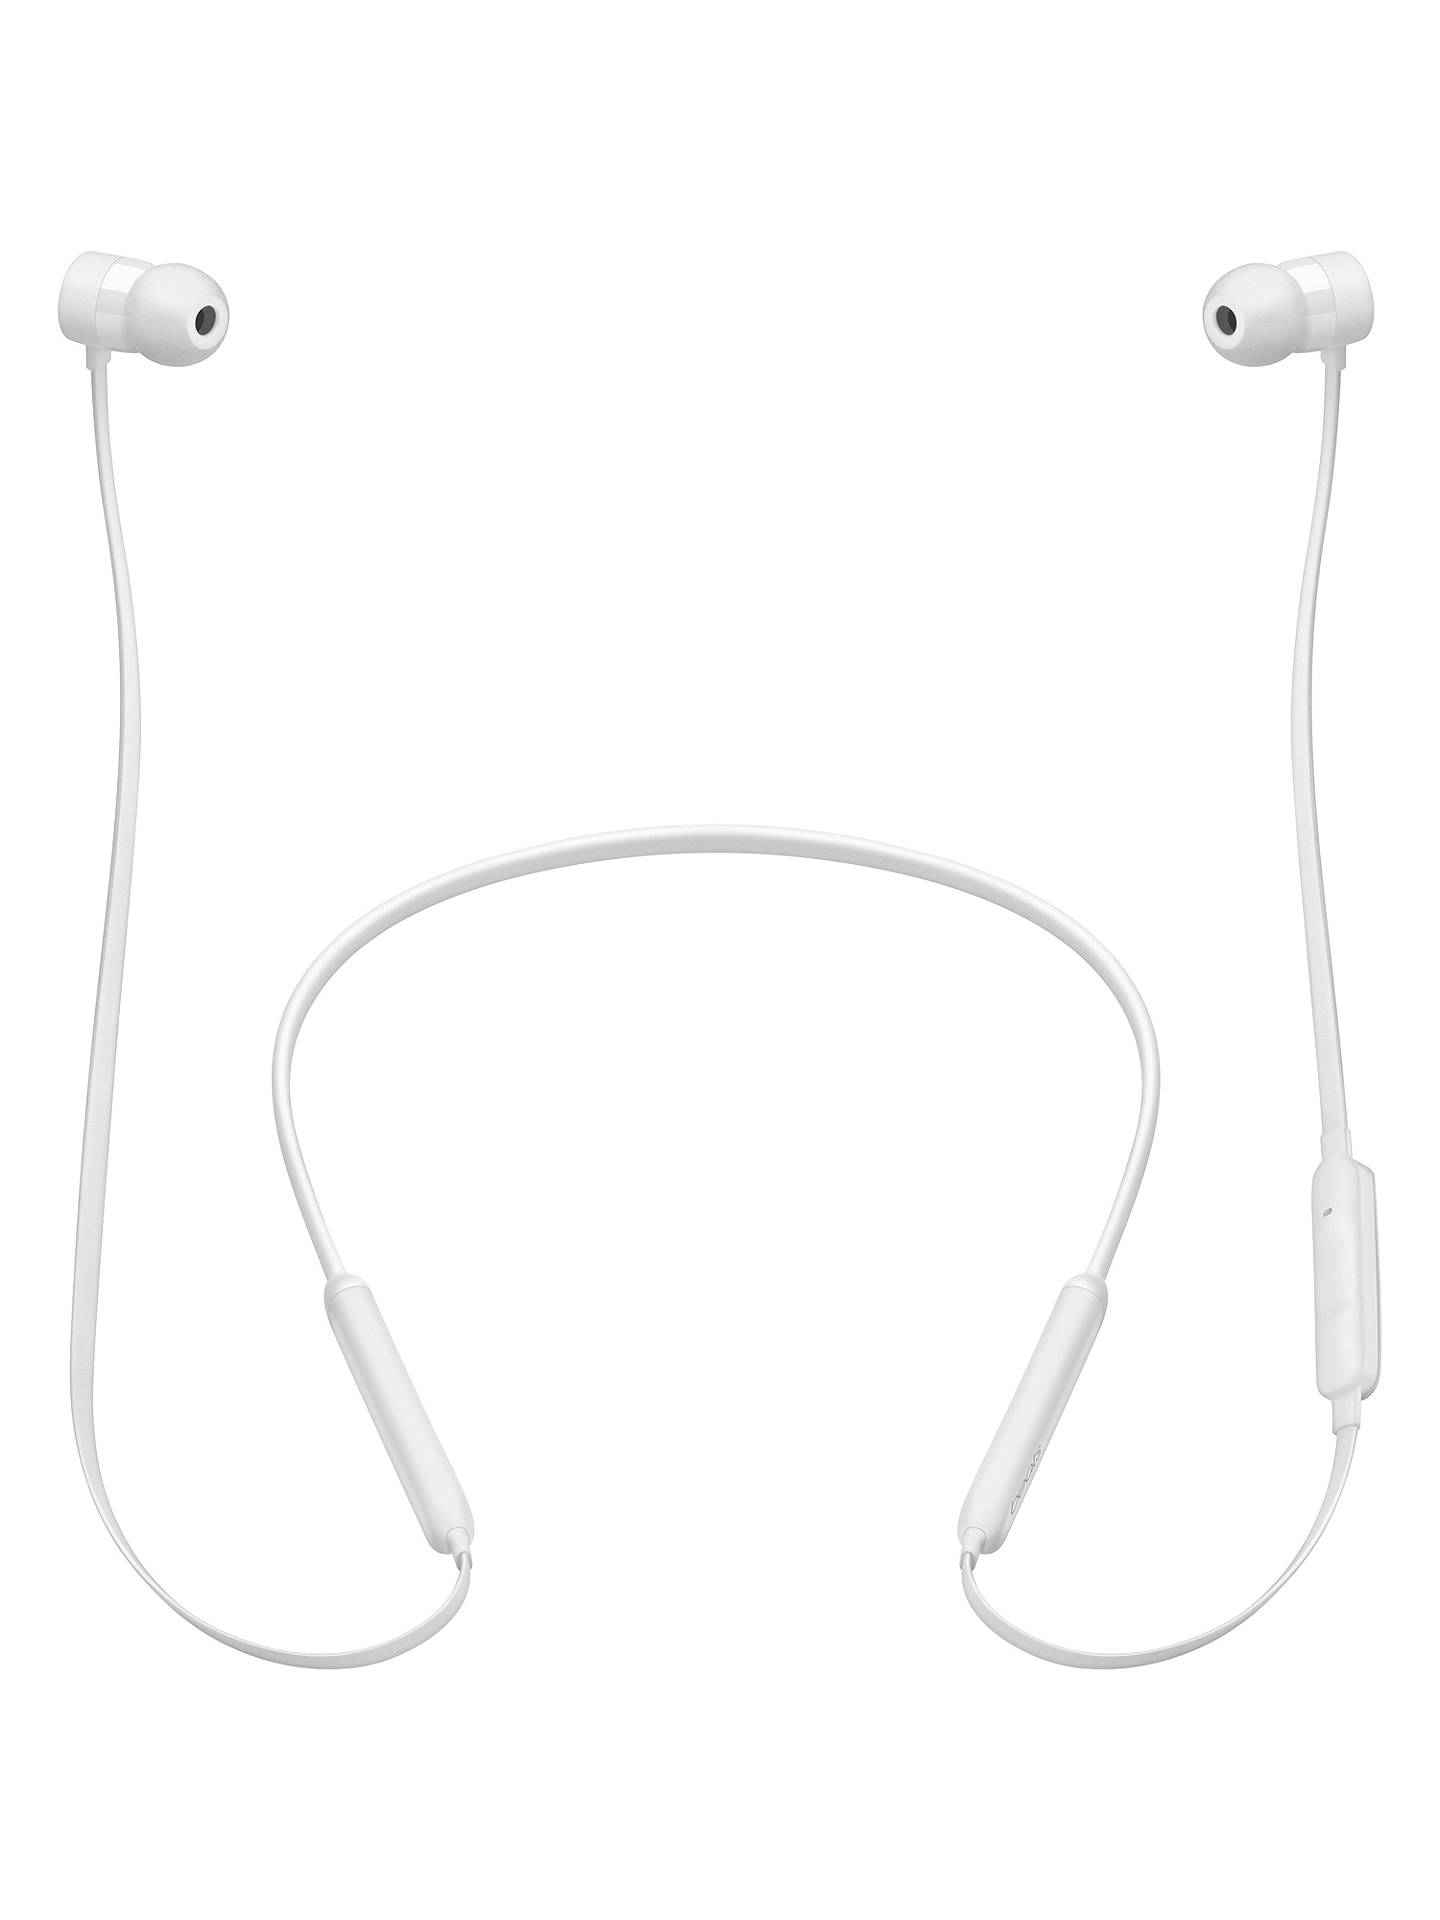 Beatsˣ Wireless Bluetooth In Ear Headphones With Mic Remote At John Lewis Partners